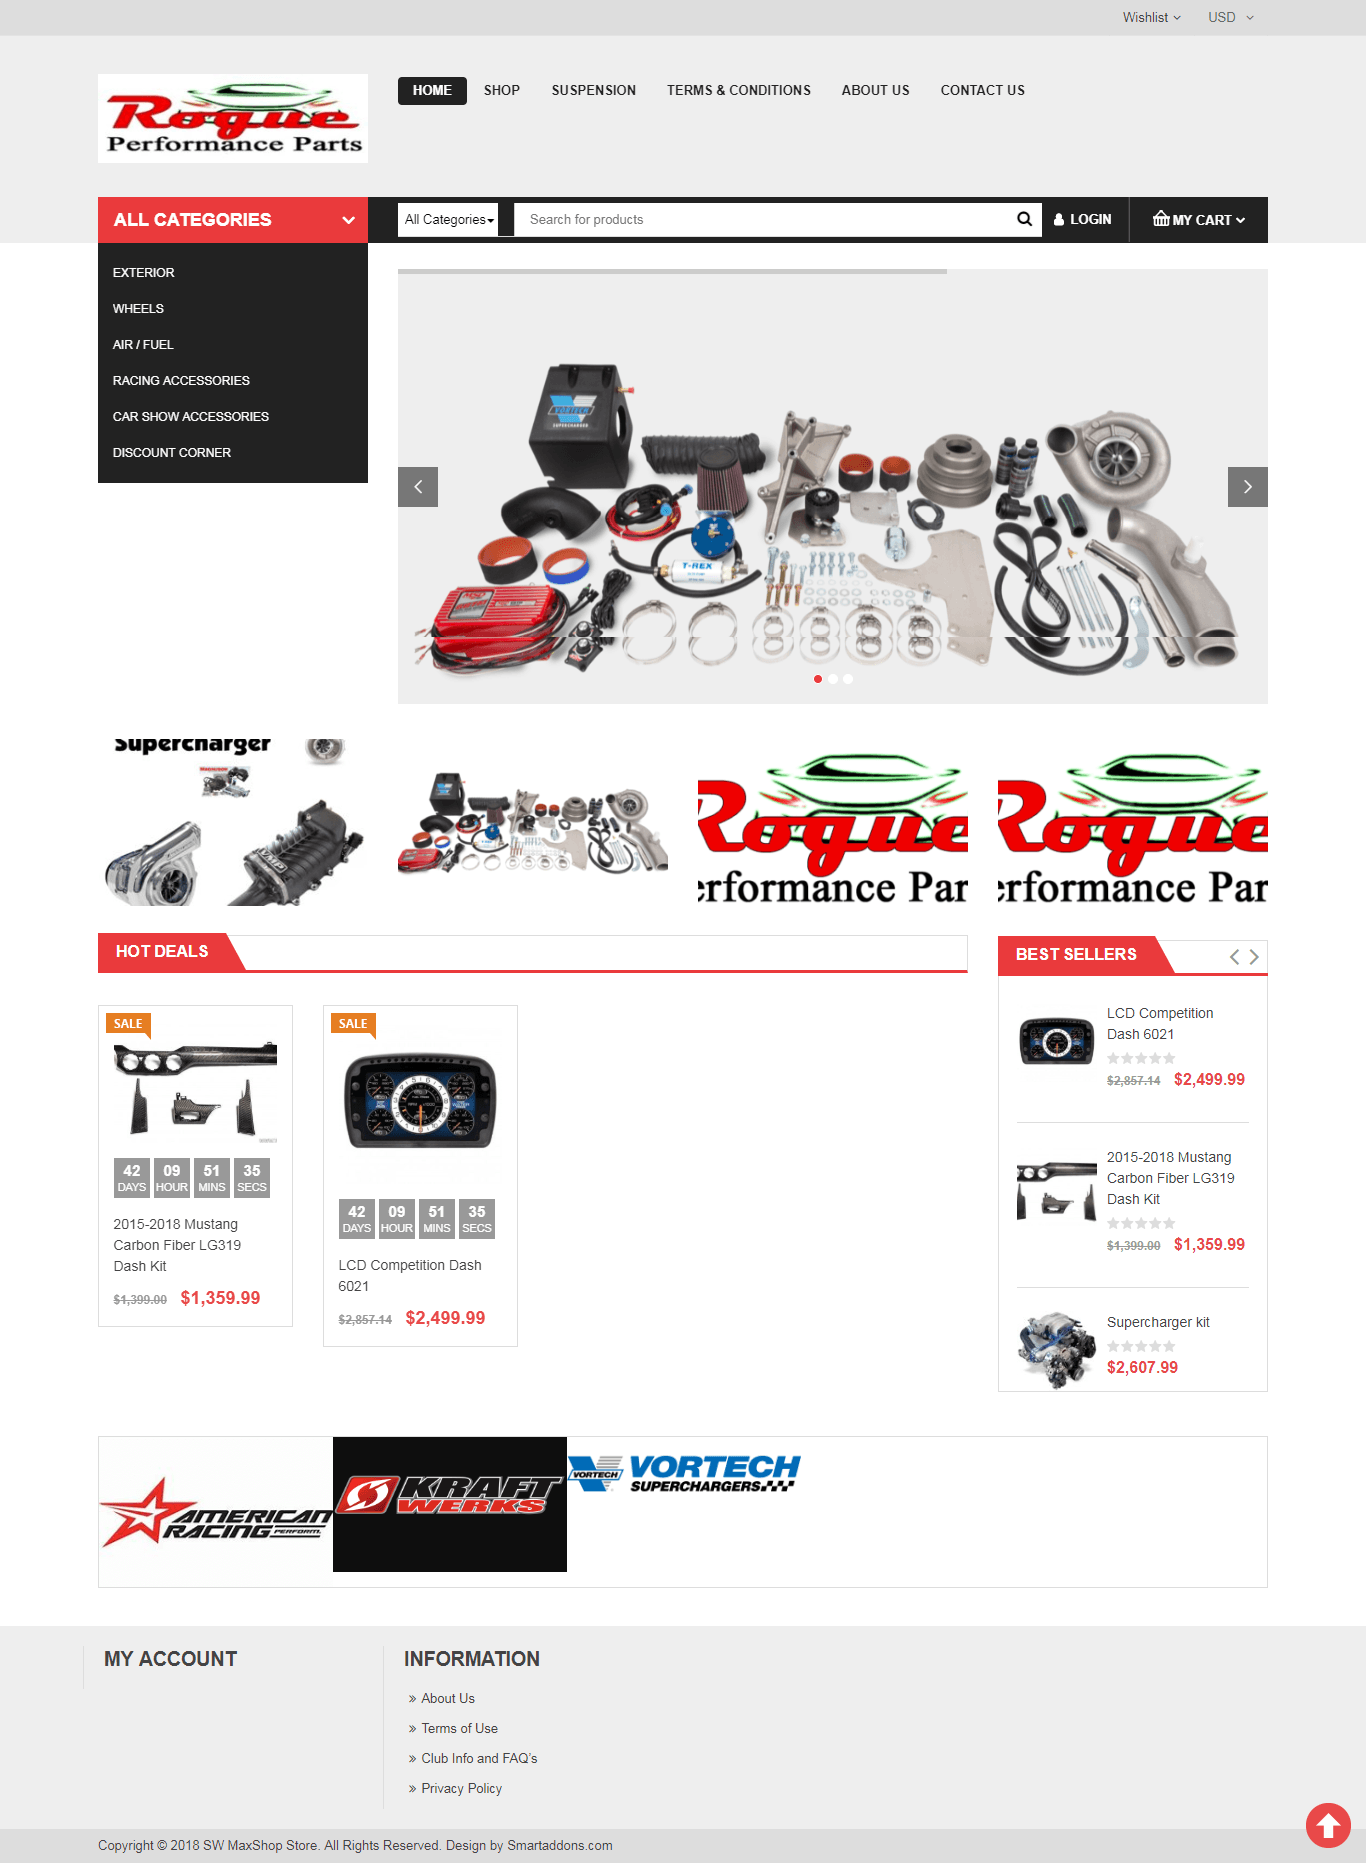 rogueperformanceparts